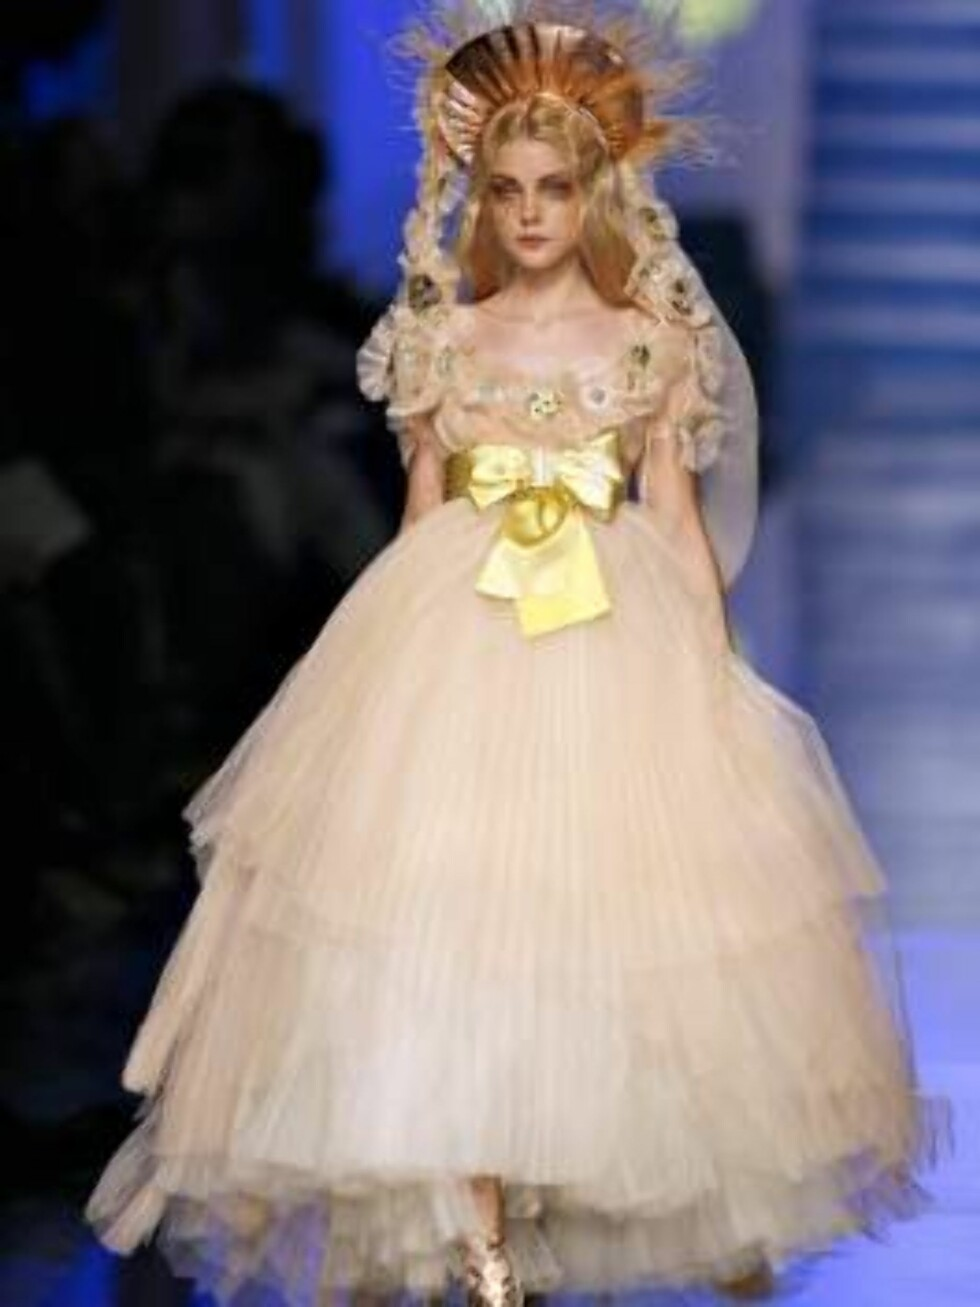 A model displays a creation by French fashion designer Jean-Paul Gaultier for his Haute-Couture Spring-Summer 2007 collection presentation in Paris, France, on January 24, 2007.   Photo by Khayat-Nebinger-Orban-Taamallah/ABACAPRESS  Code: 4001/114324  COP Foto: Stella Pictures